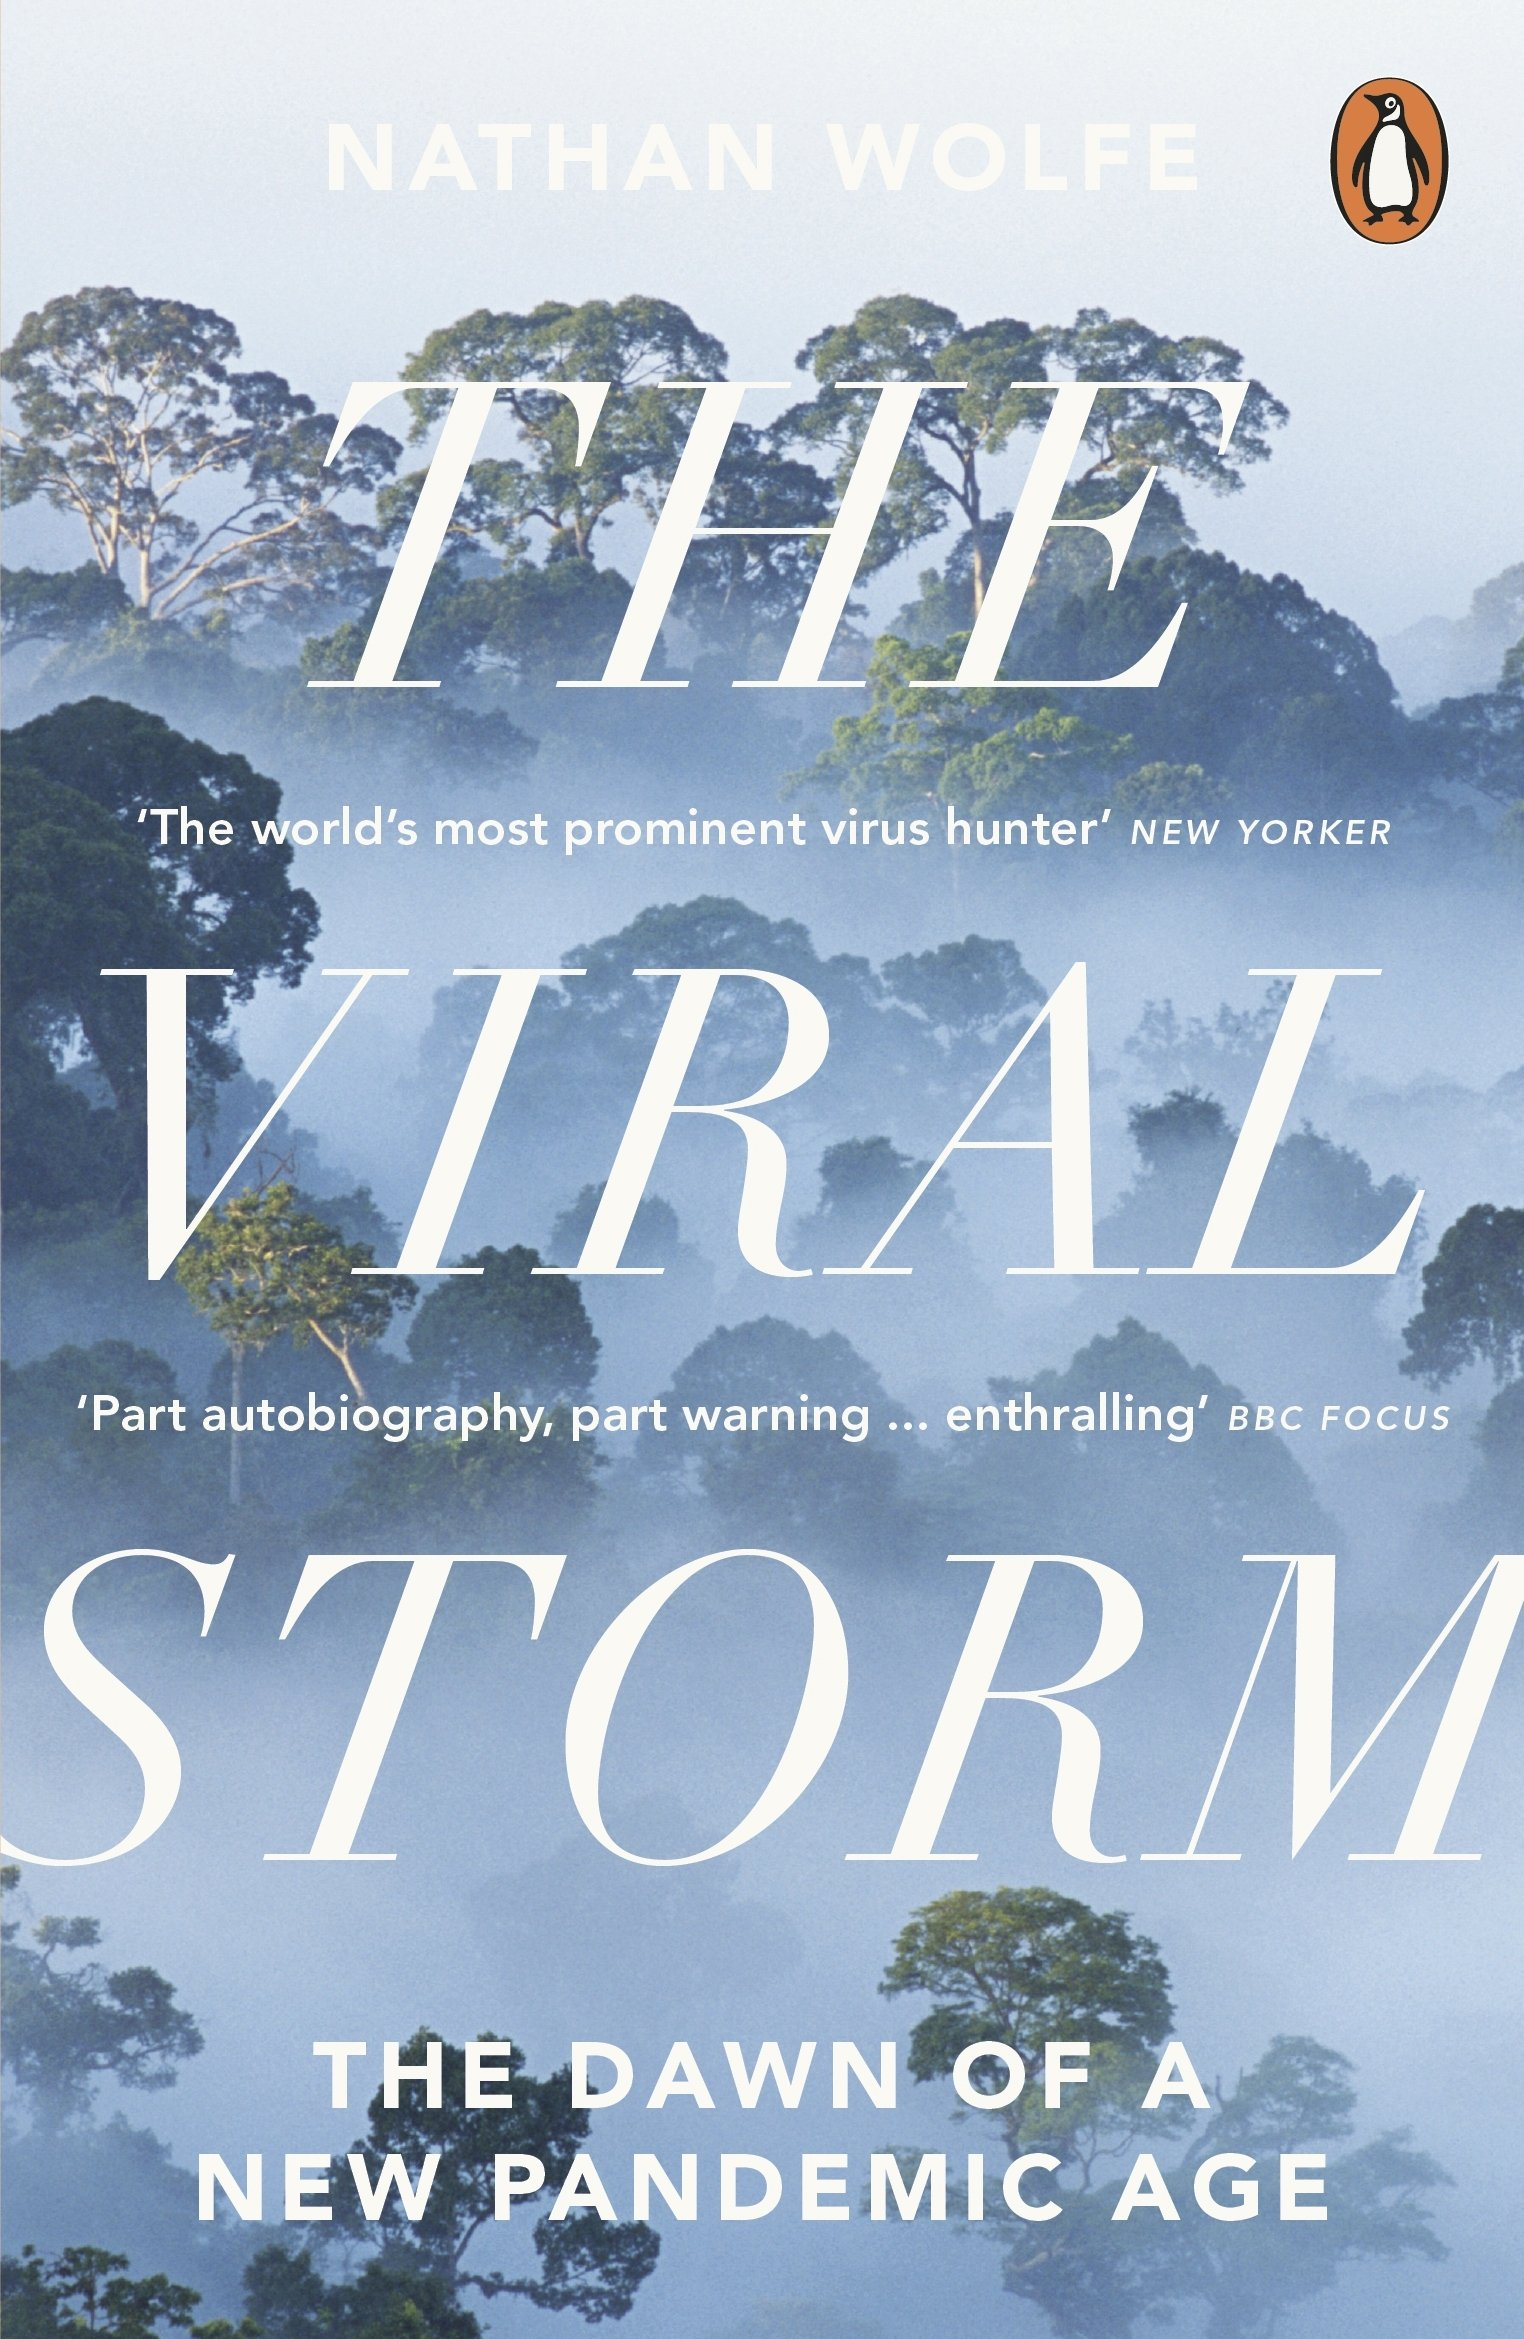 The Viral Storm: The Dawn of a New Pandemic Age: Amazon.es: Nathan D. Wolfe: Libros en idiomas extranjeros